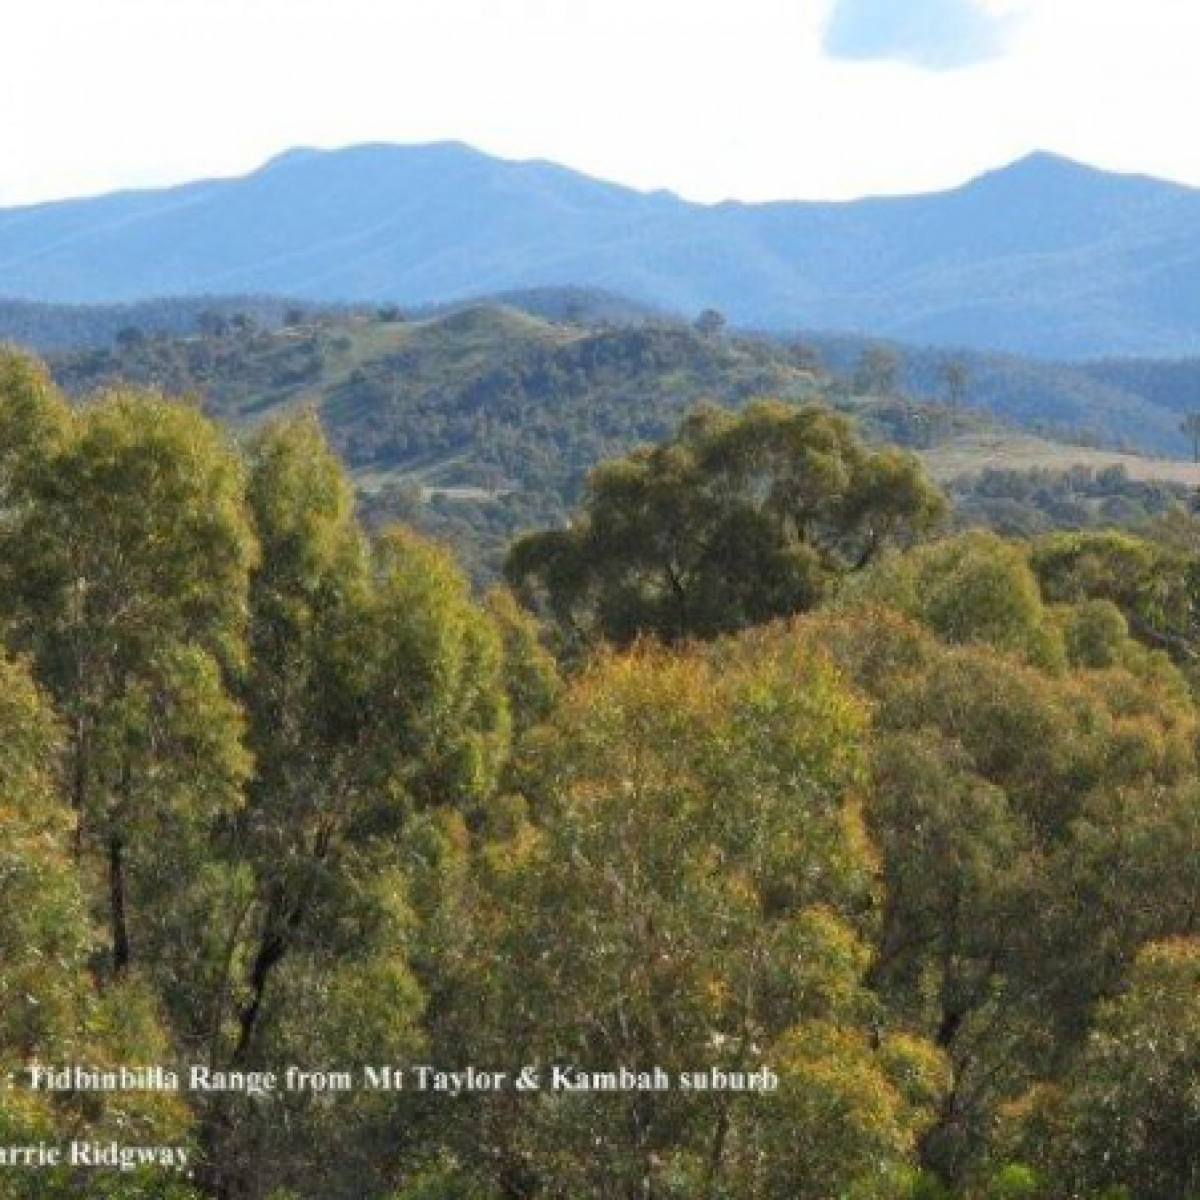 Mt Tidbinbilla from Mt Taylor